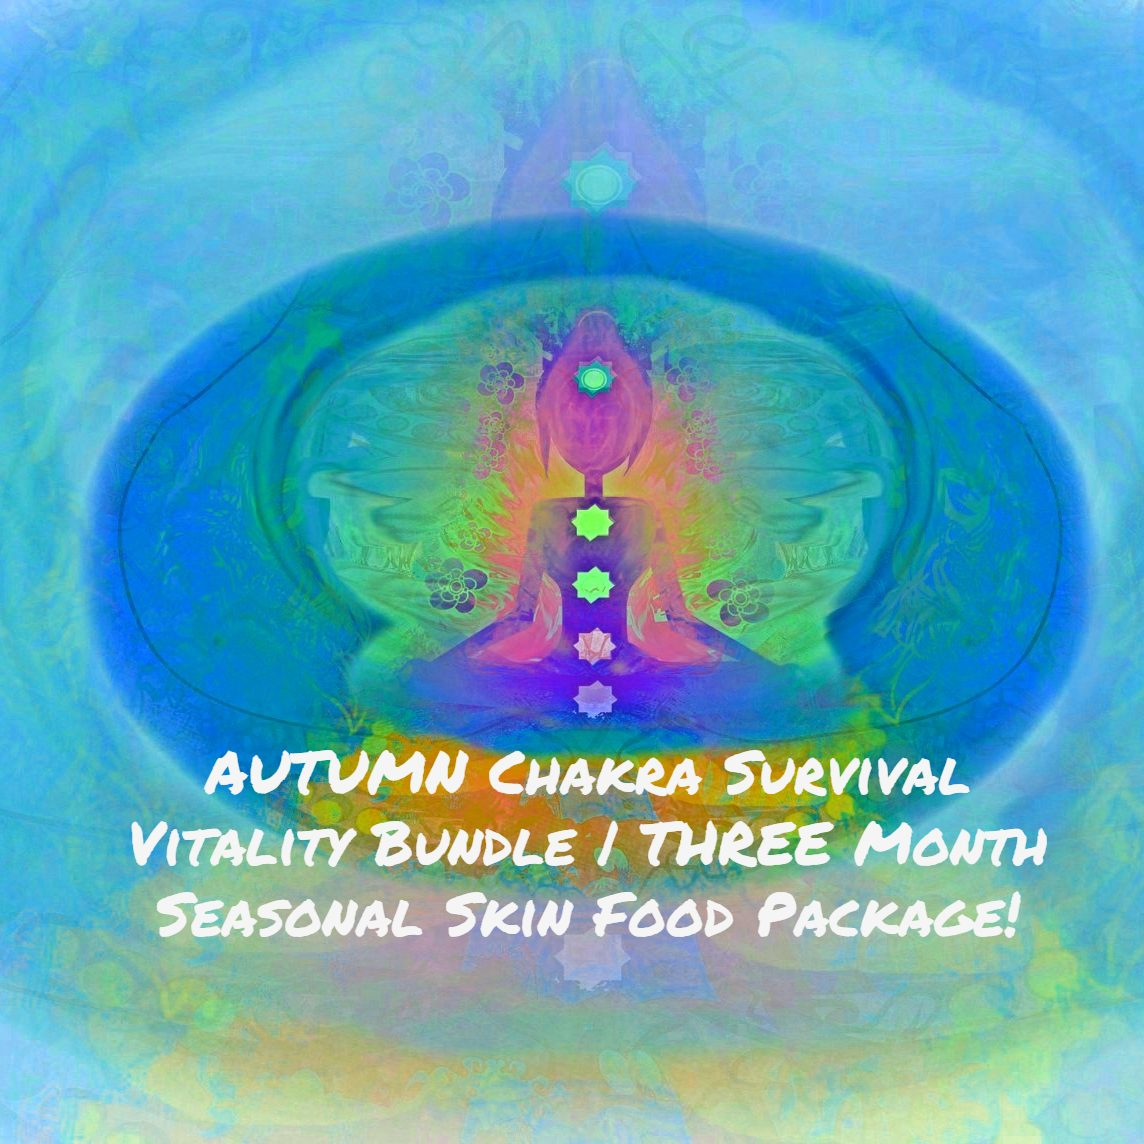 AUTUMN Chakra Survival Vitality Bundle | THREE Month Seasonal Skin Food Package!